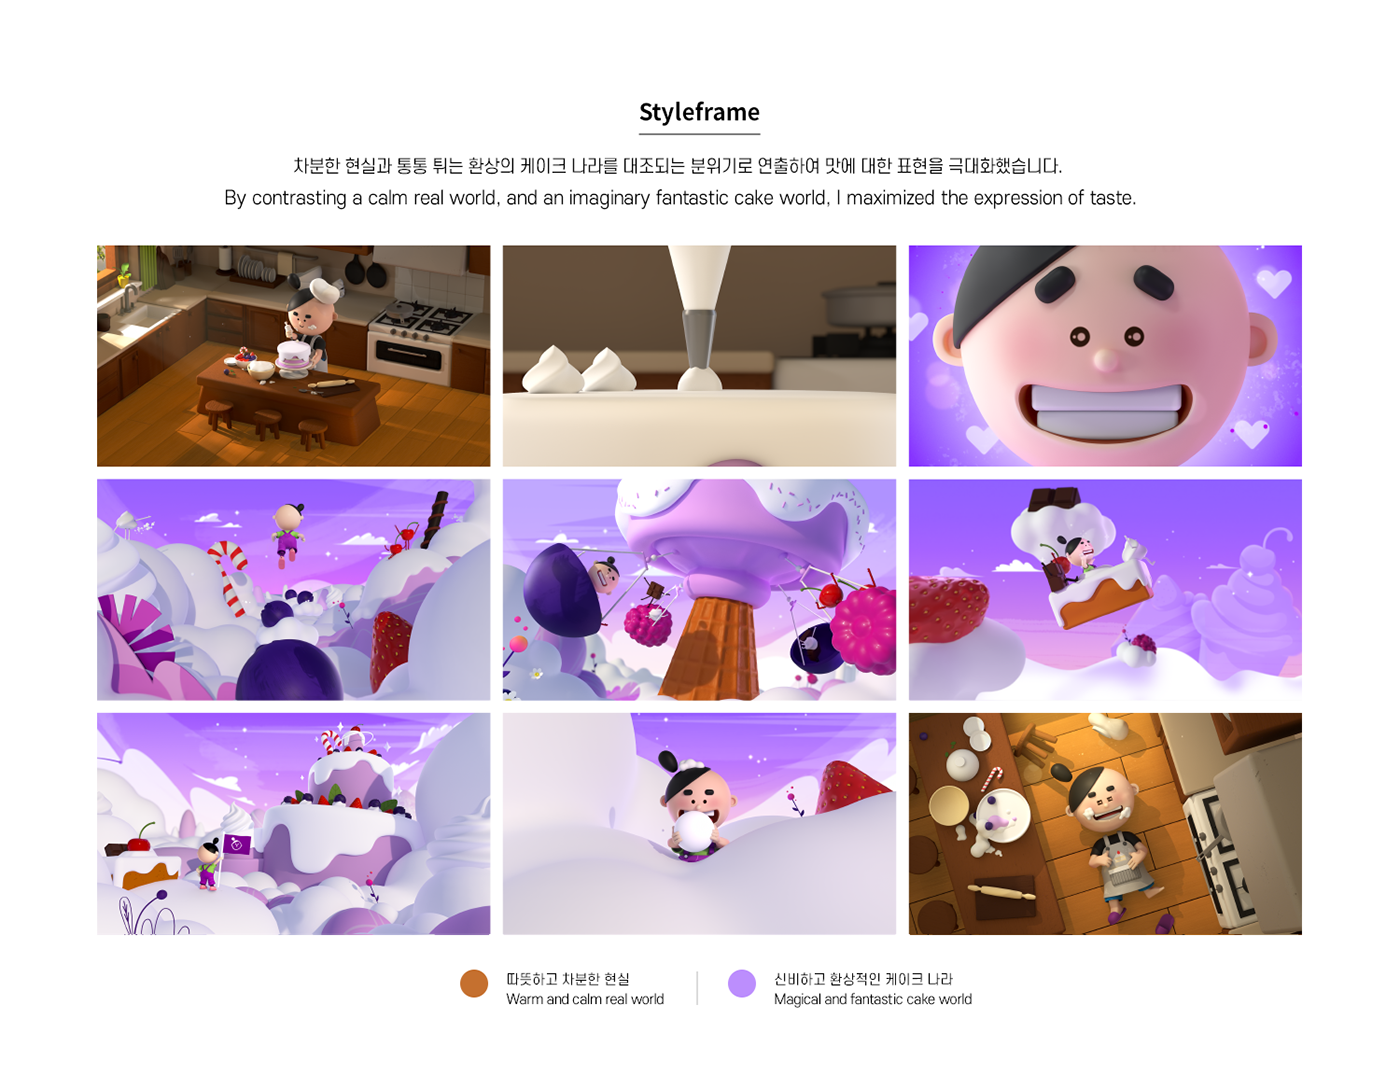 3D 3dcharacter 3dmotiongraphic cake Character fantasy graphic motiongraphic motiongraphics purple